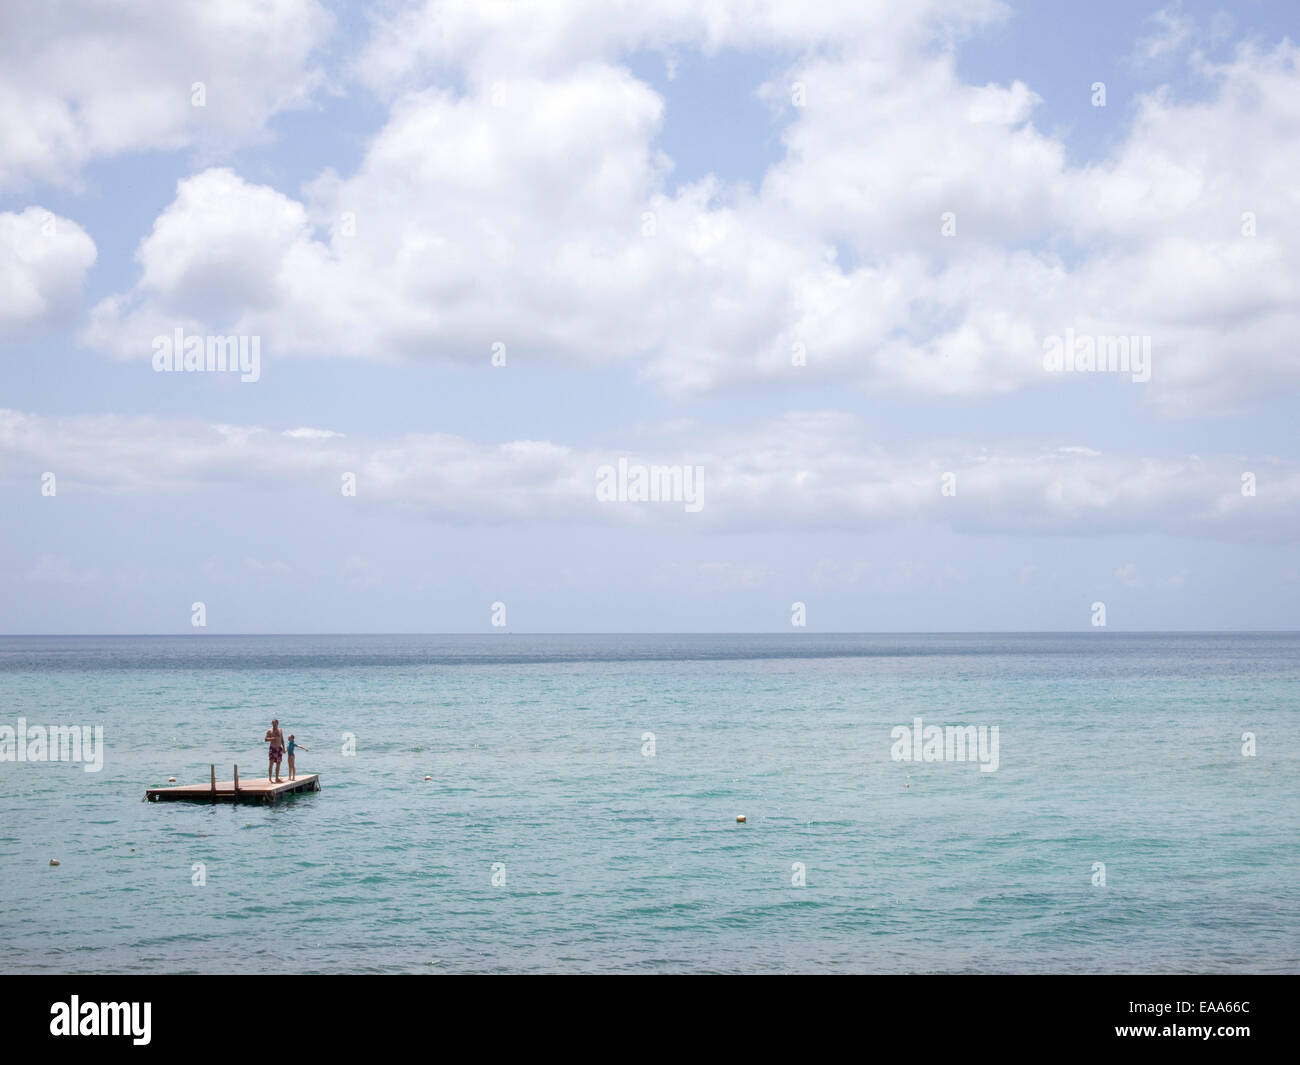 swimmers on raft in Caribbean Sea - Stock Image